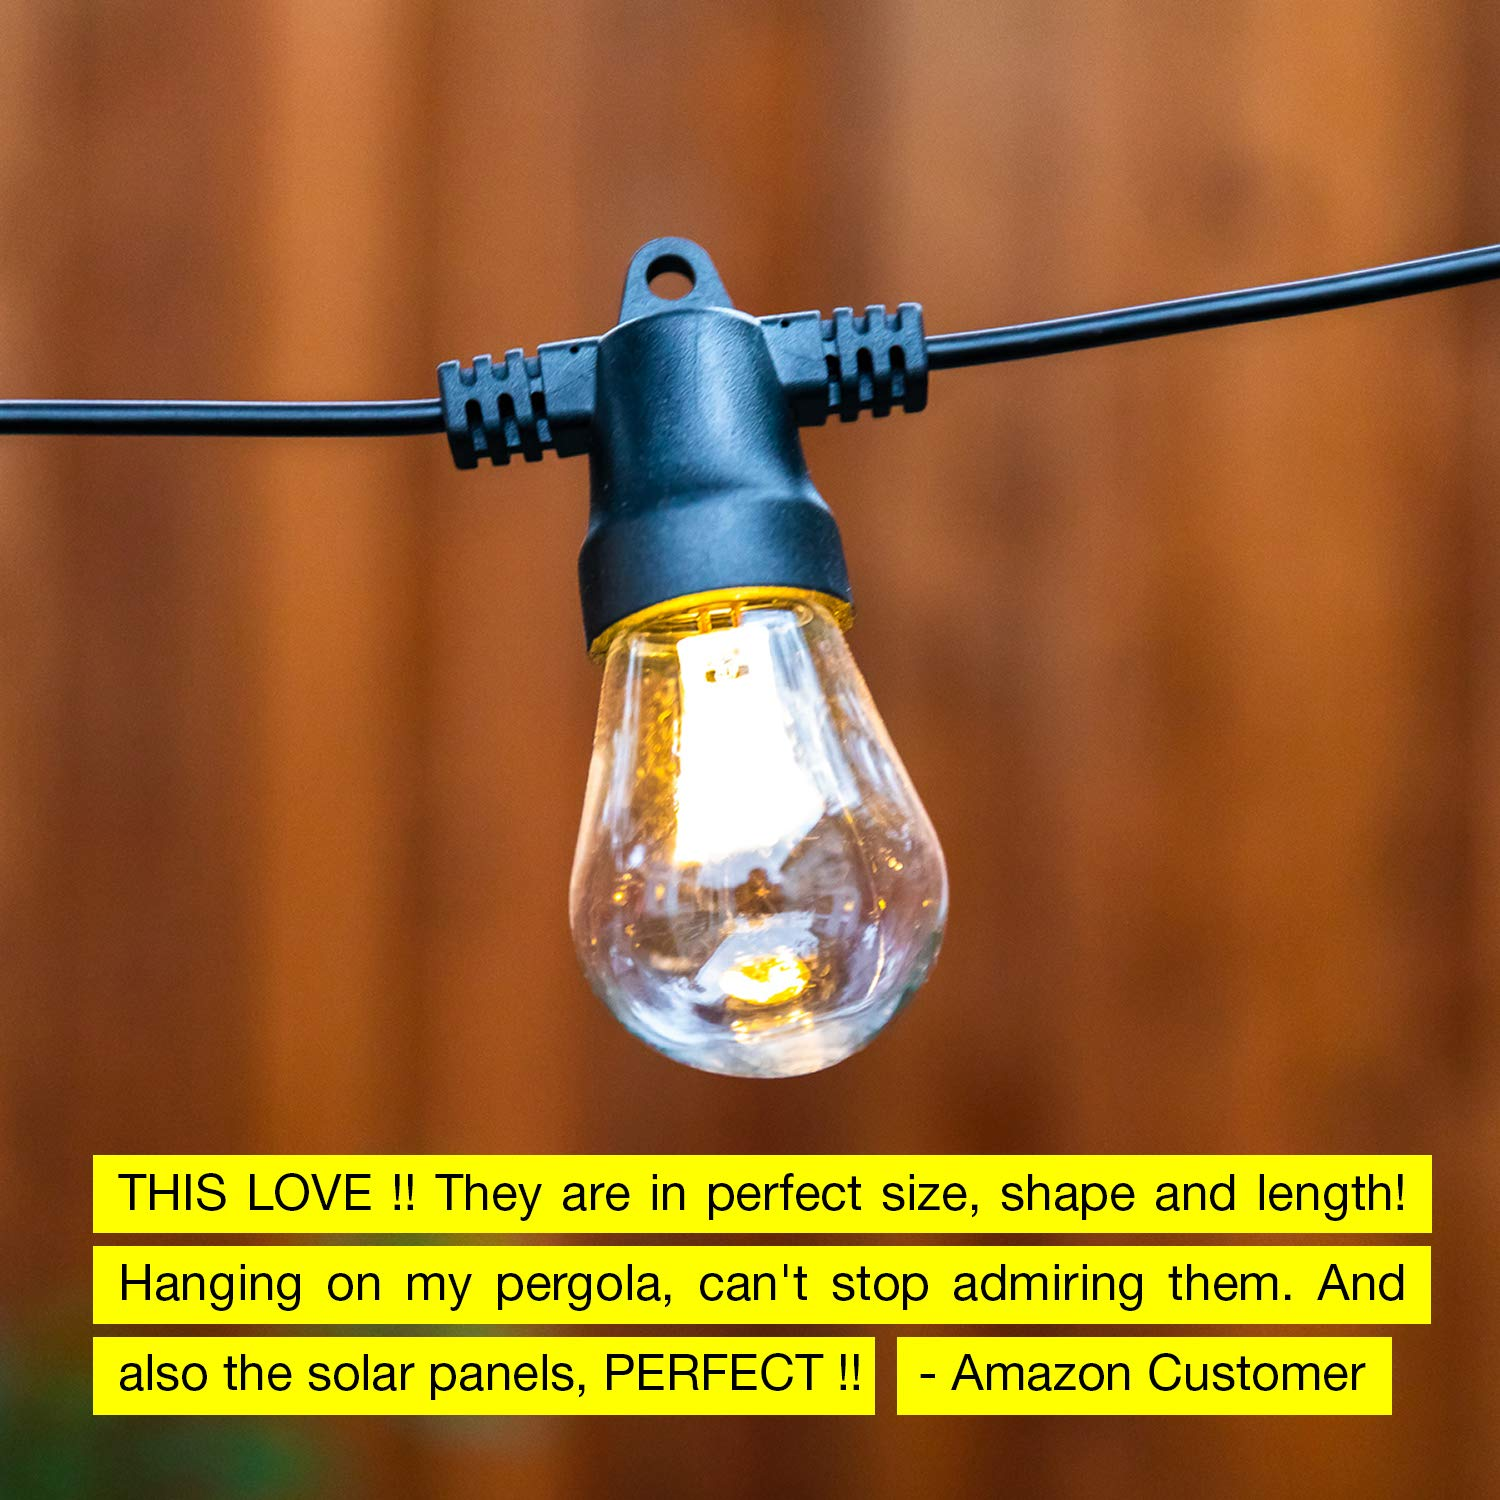 Brightech Ambience Pro 27 Ft Commercial Grade Market Lights Create Bistro Ambience On Your Deck Porch Waterproof Solar LED Outdoor String Lights Hanging 2W Vintage Edison Bulbs Pergola